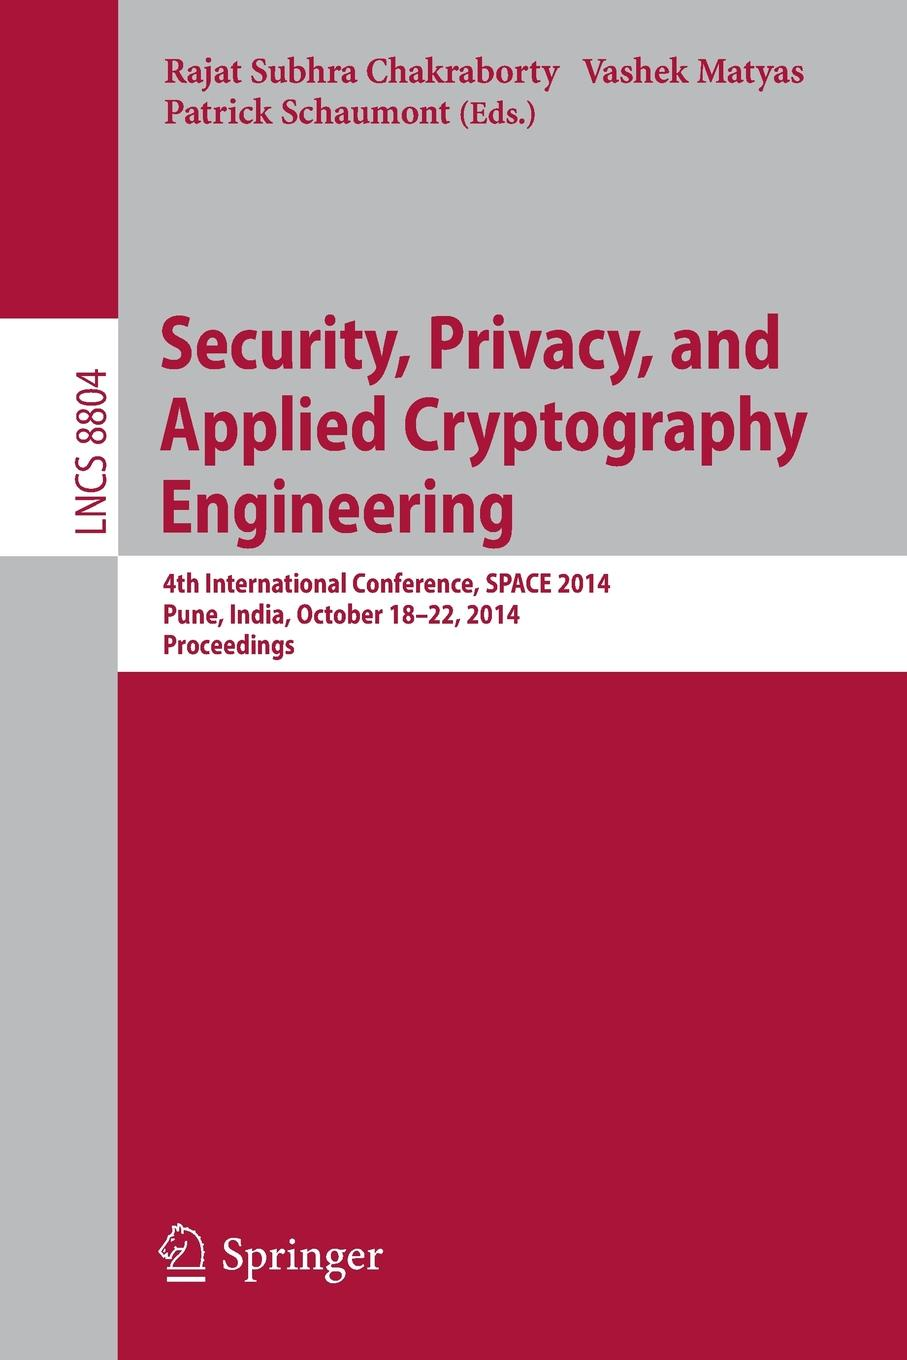 Security, Privacy, and Applied Cryptography Engineering. 4th International Conference, Space 2014, Pune, India, October 18-22, 2014. Proceedings cyber security and privacy third cyber security and privacy eu forum csp forum 2014 athens greece may 21 22 2014 revised selected papers